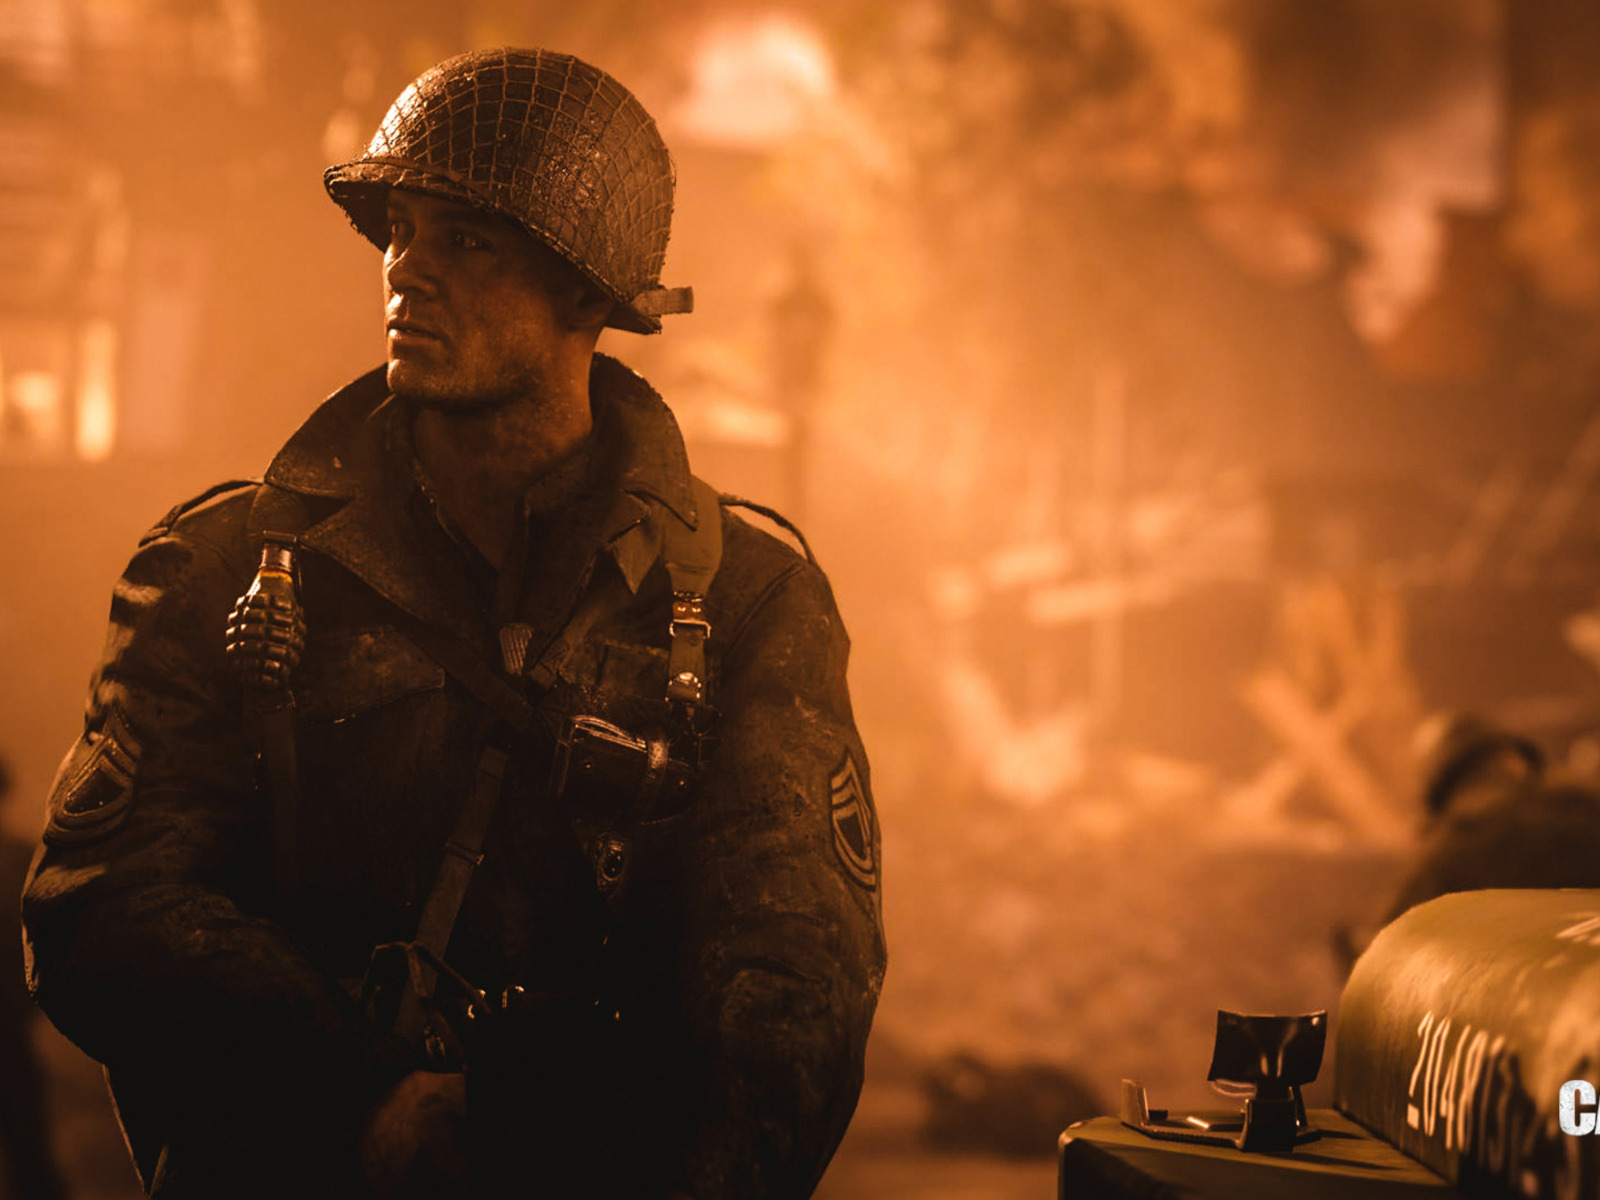 1600x1200 Call Of Duty Wwii Soldier 1600x1200 Resolution Hd